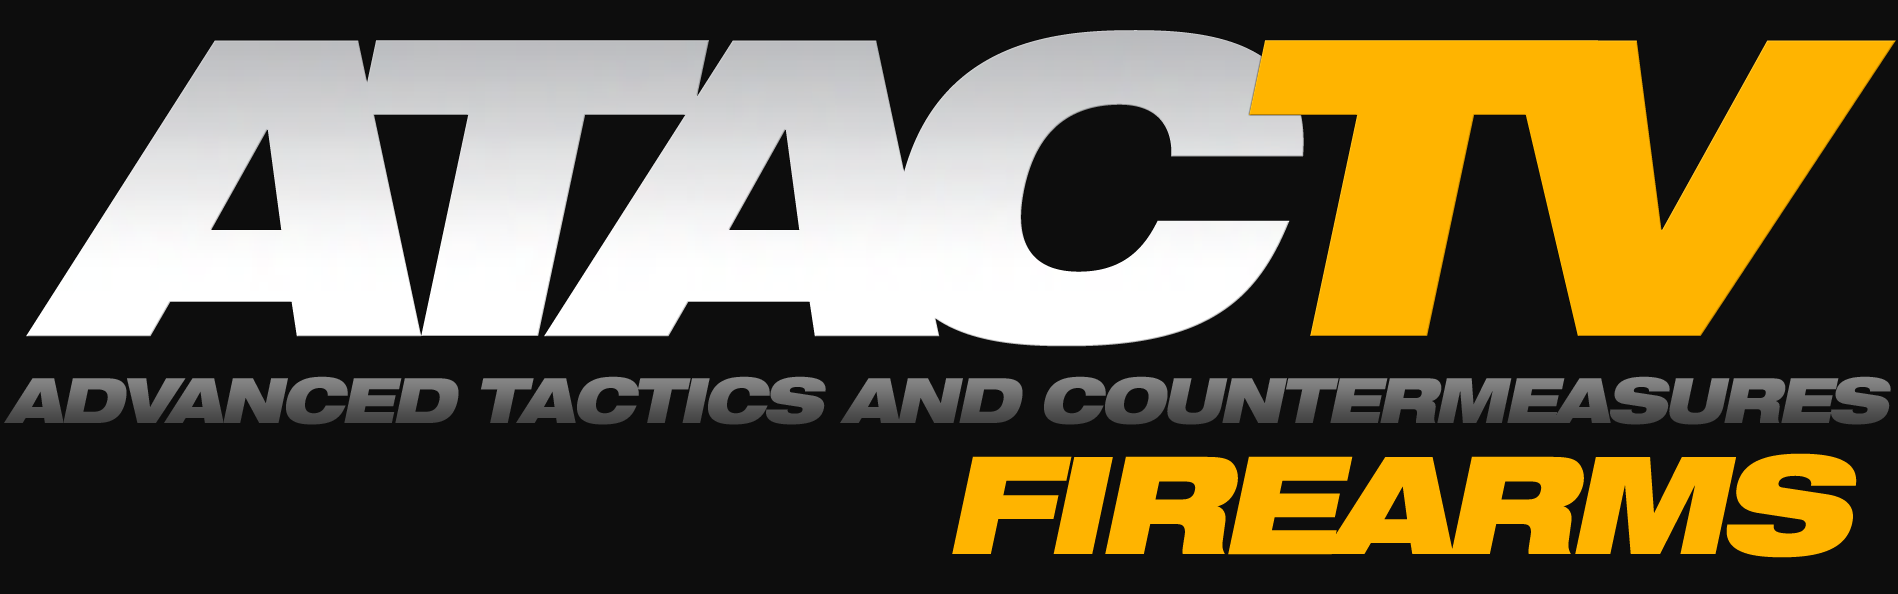 ATAC TV Firearms Channel